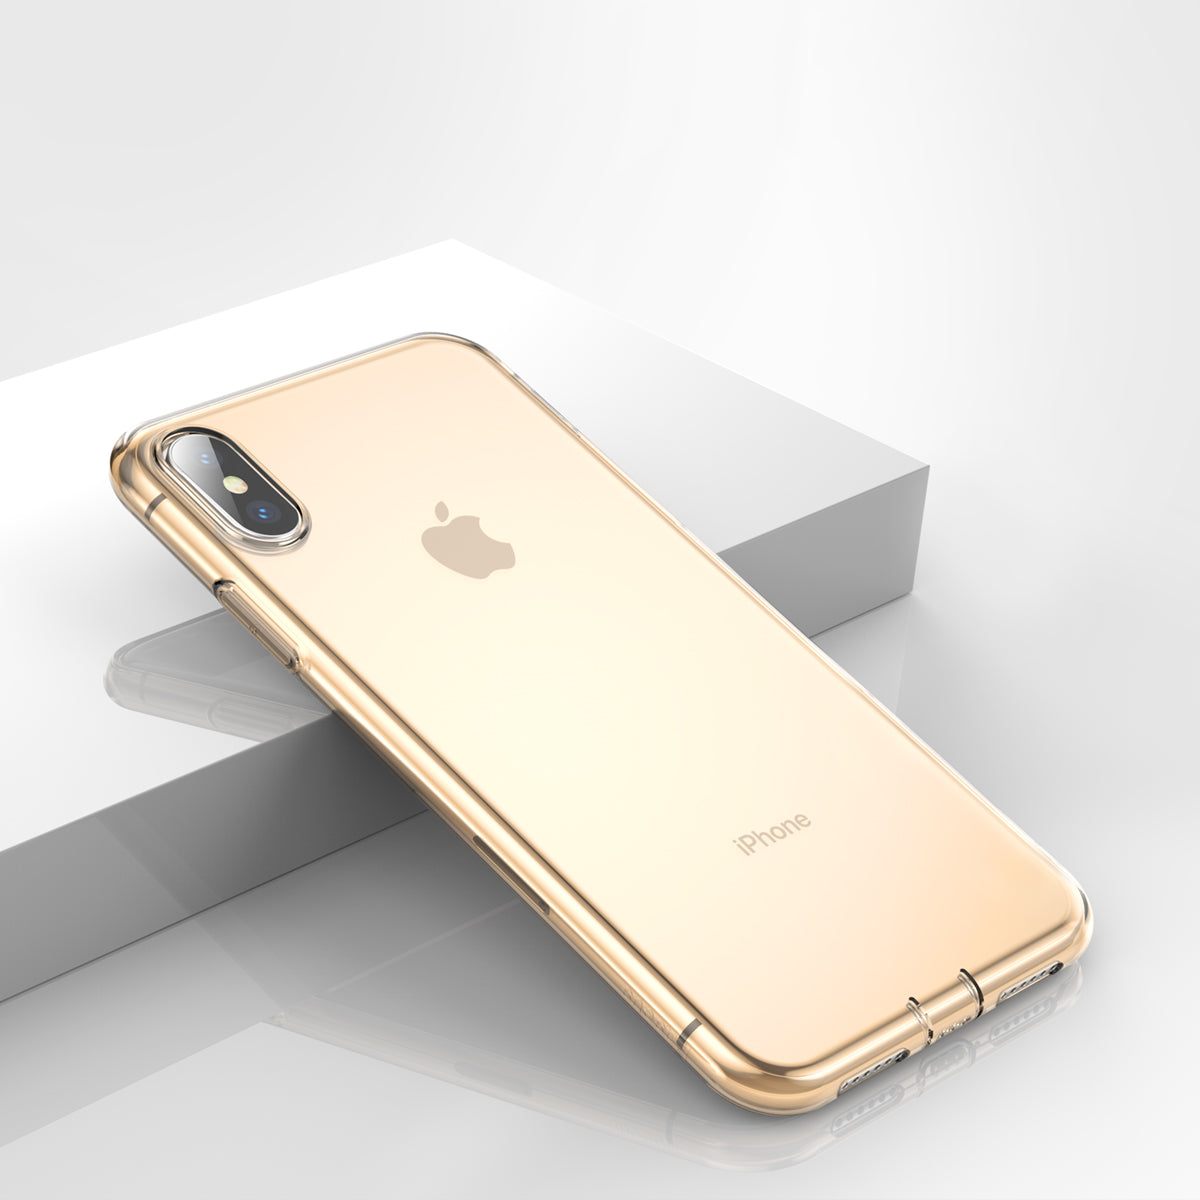 iPhone-XS-Baseus-Simple-Series-Transparent-Gold-Dust-Free-Plug_S07WJHMKCNUX.jpg